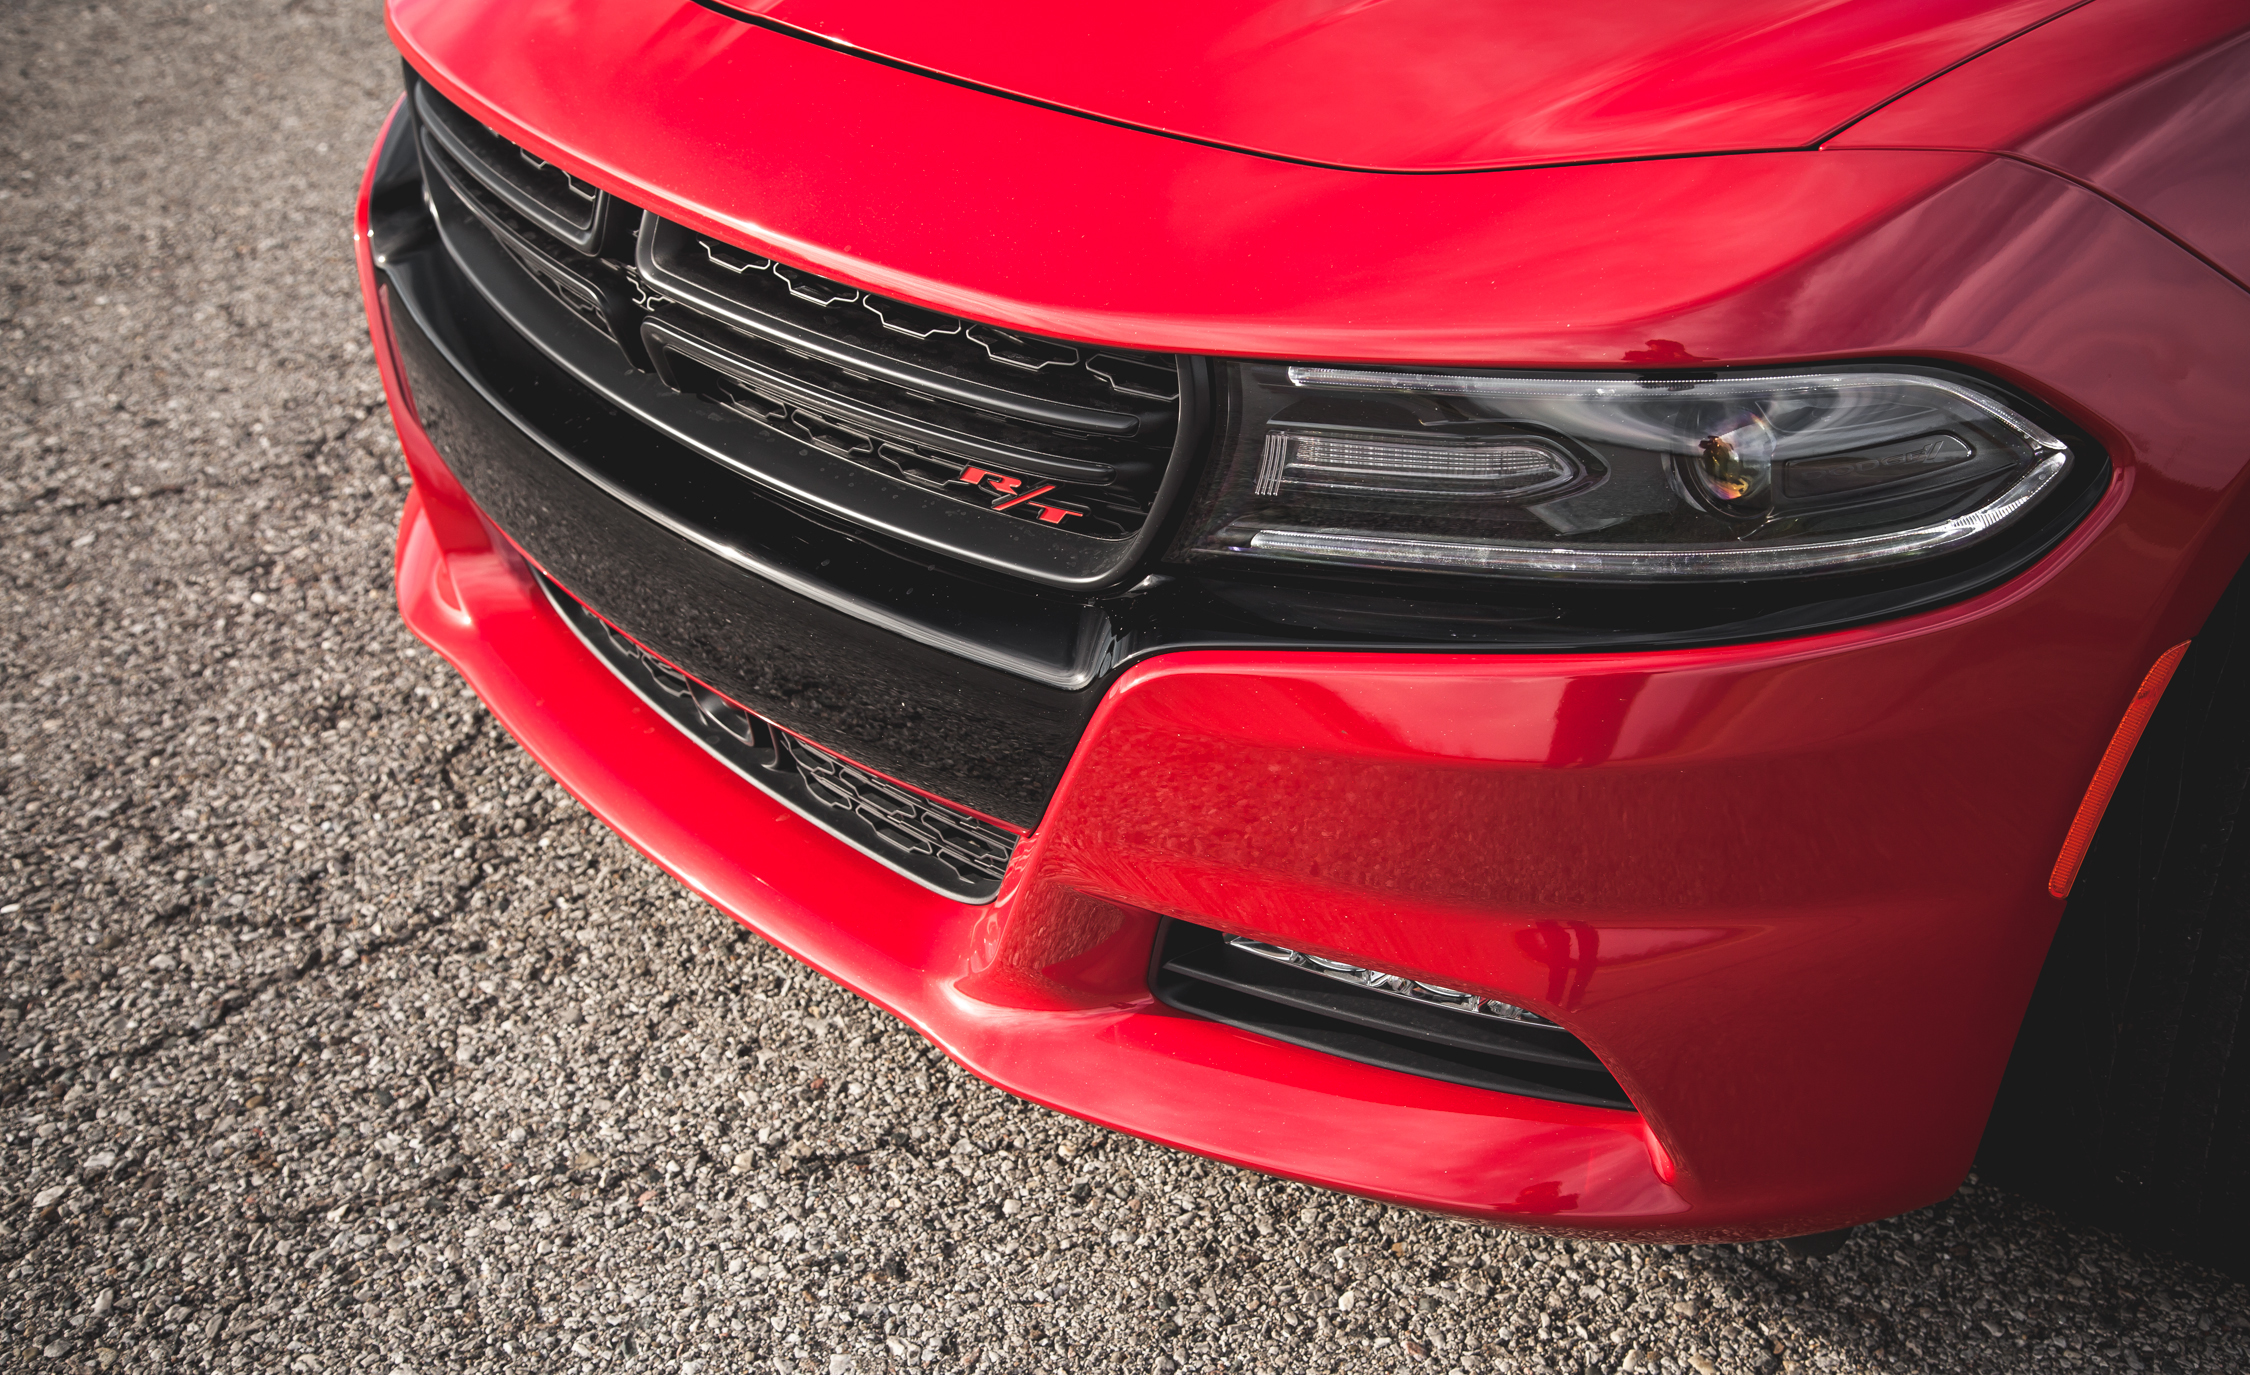 2015 Dodge Charger R/T Exterior Headlamp and Grille